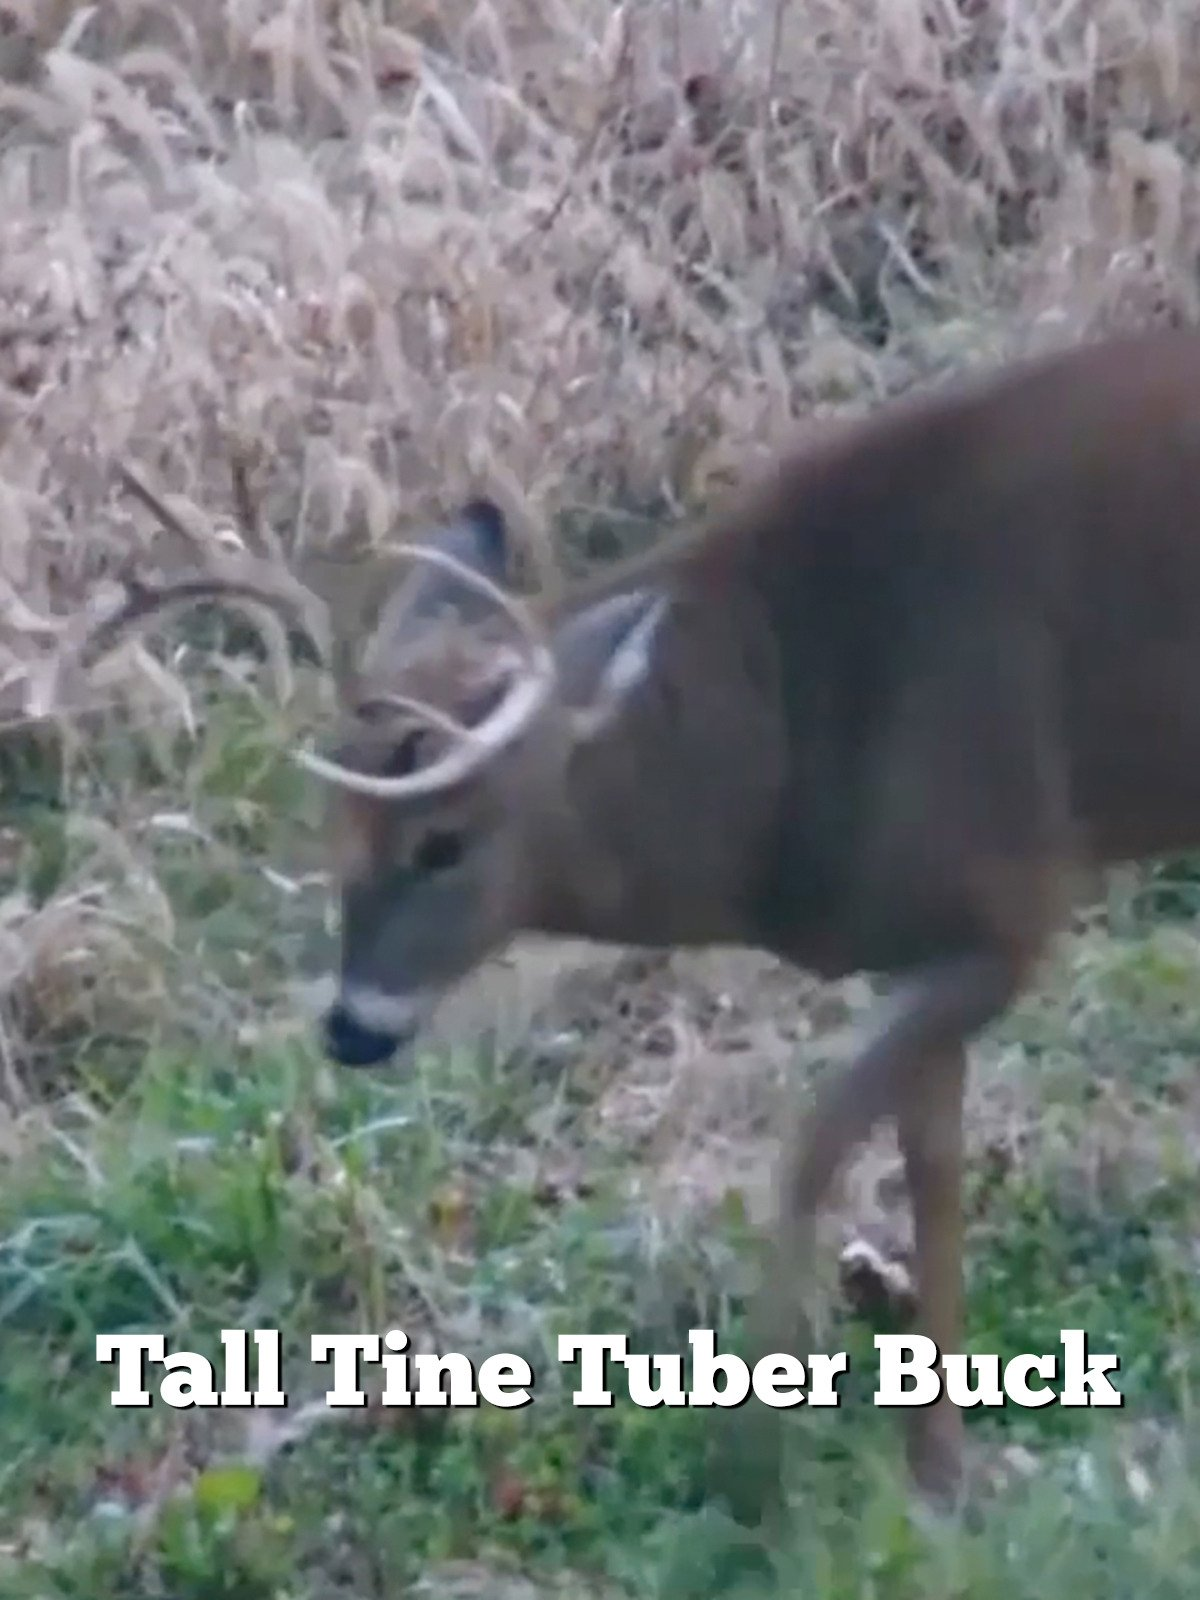 Tall Tine Tuber Buck